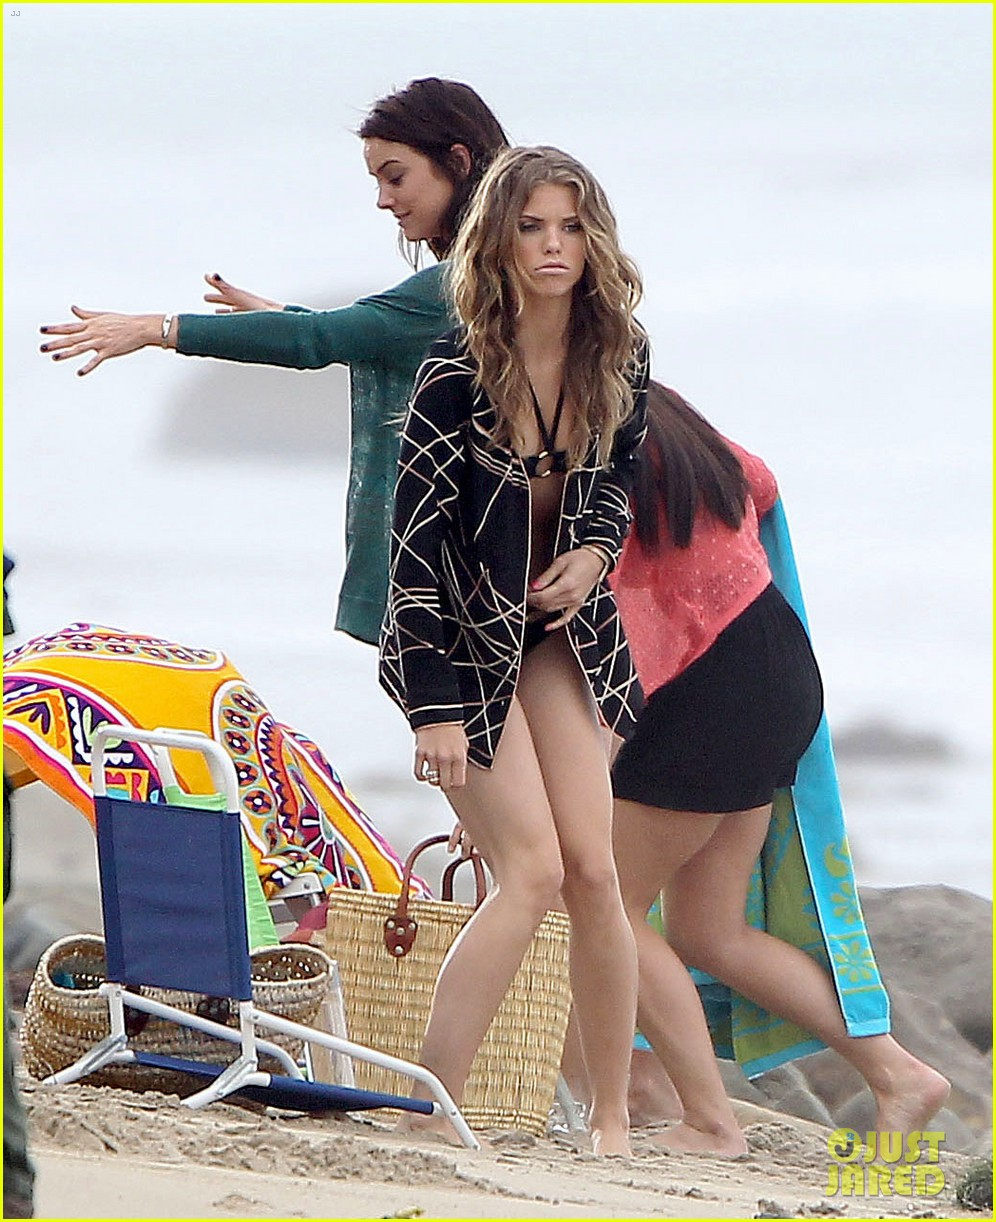 annalynne mccord jessica lowndes 90210 bikini babes 11